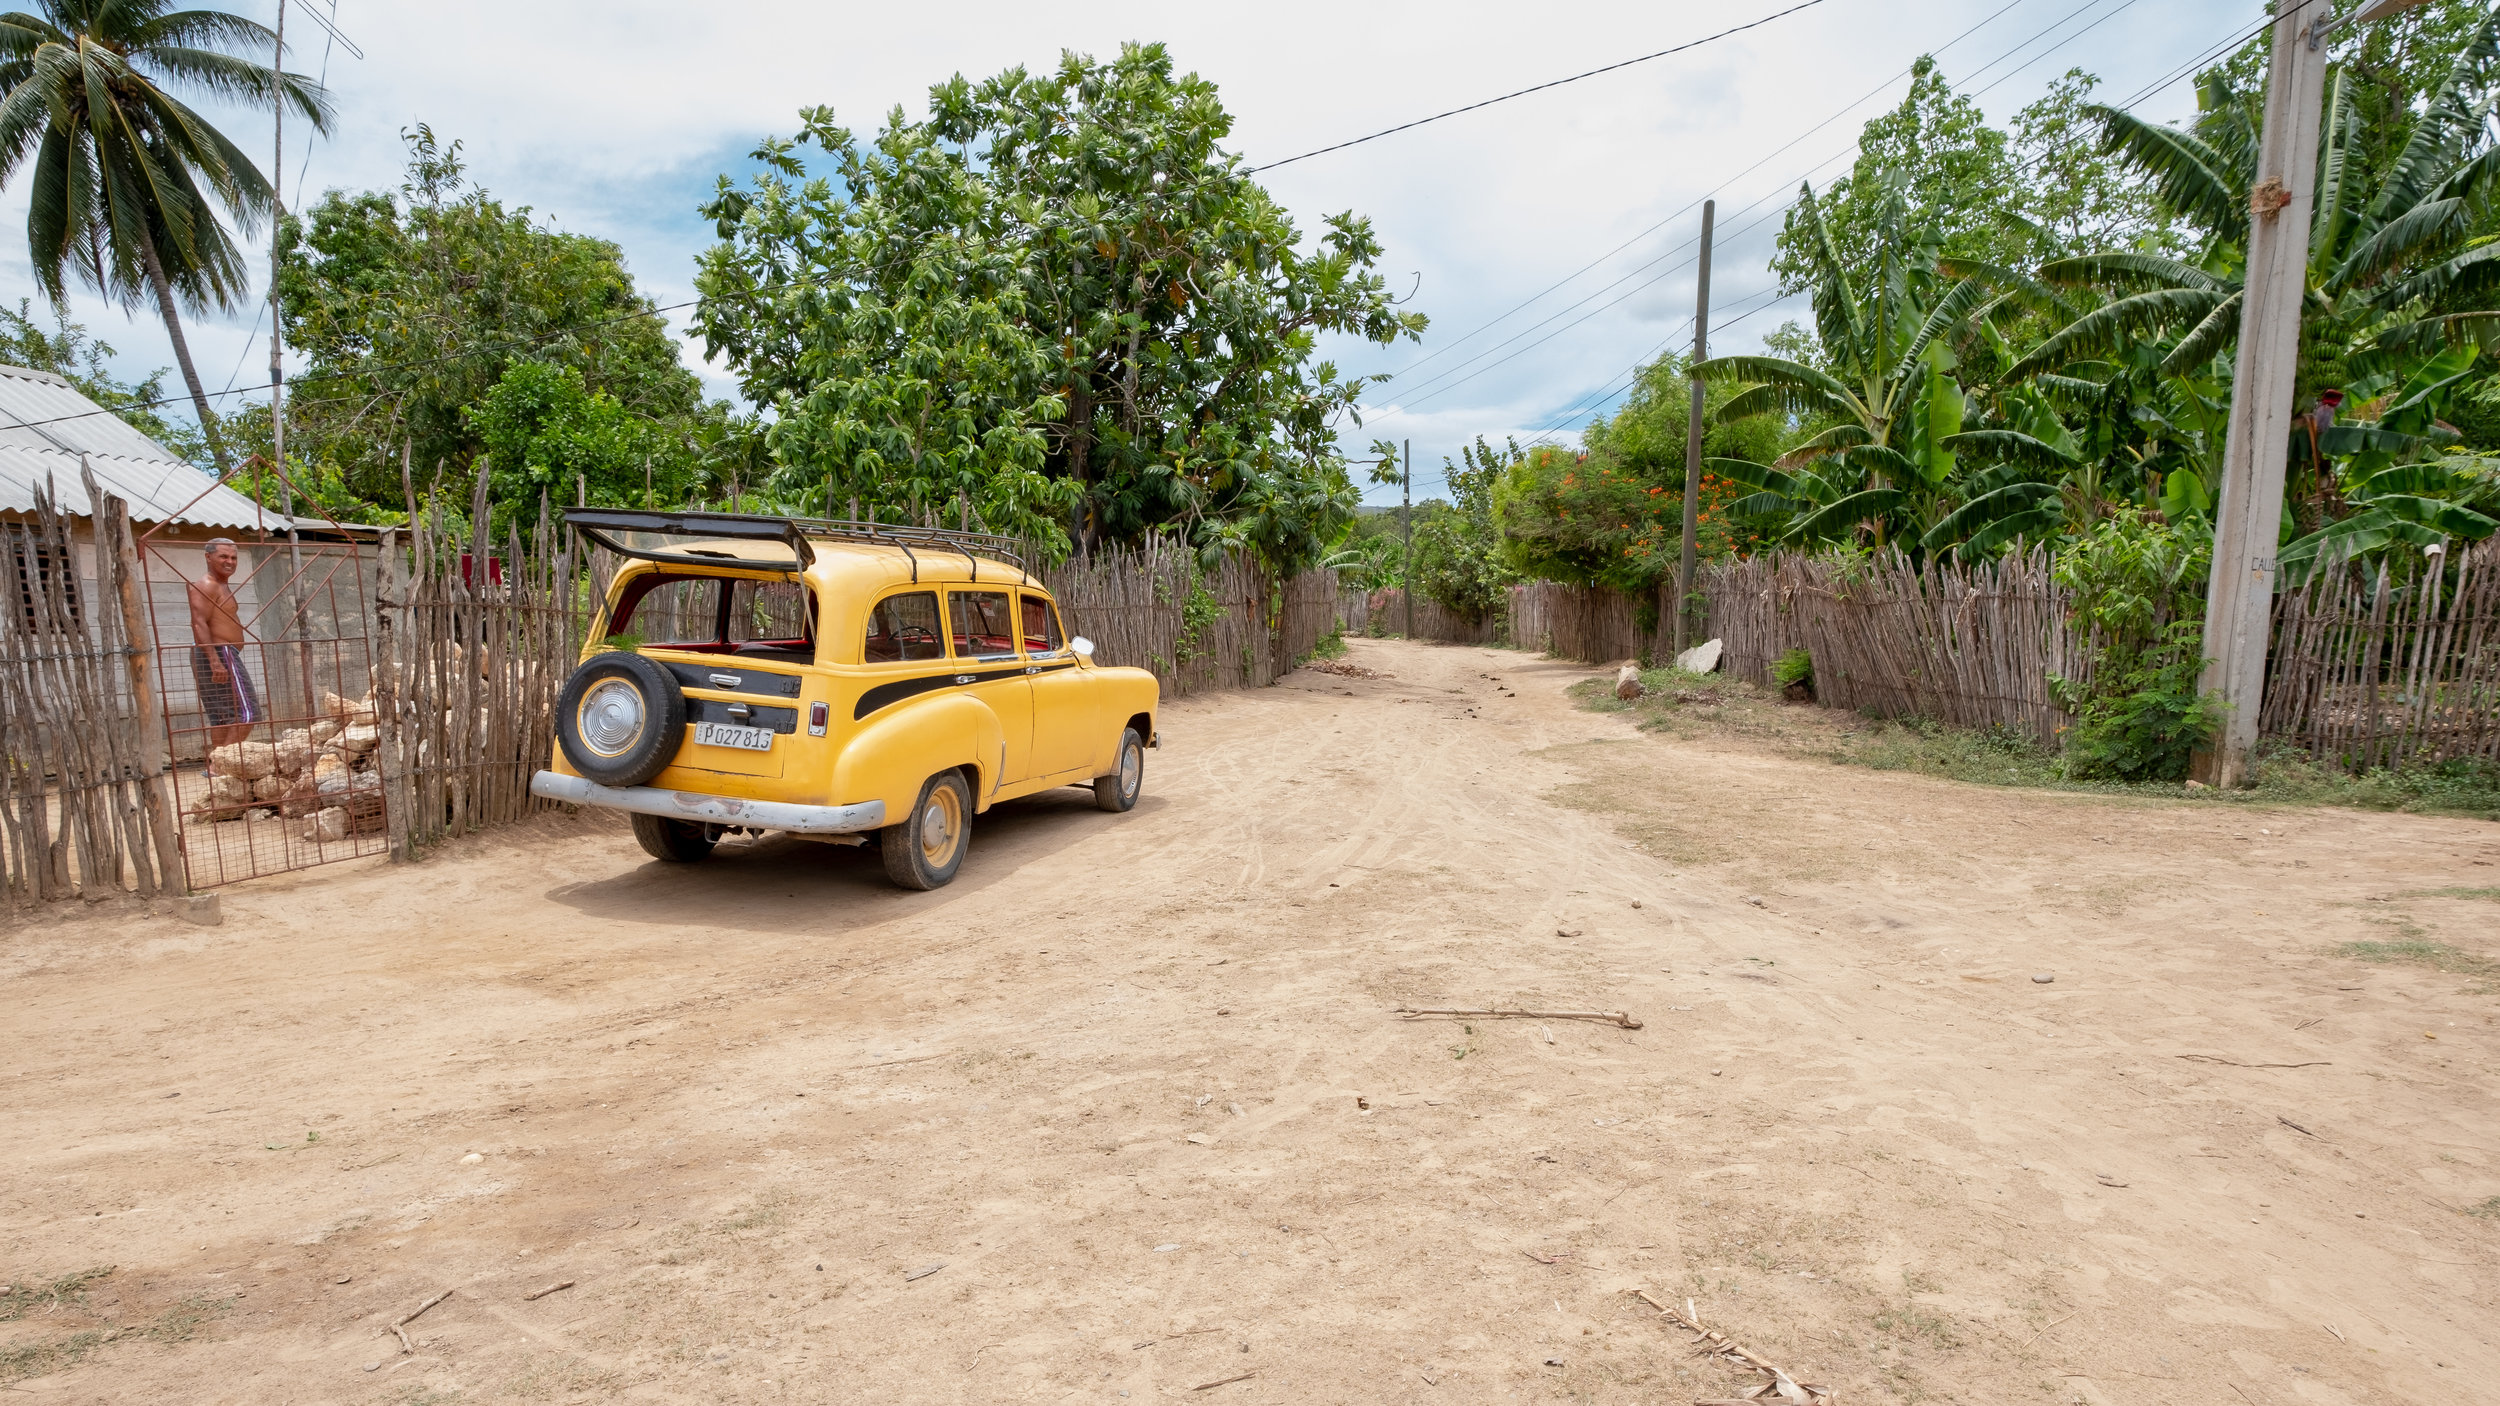 Residential community of Ocujal de Yateritra. The Yellow submarine/station wagon is how we made the trip there.